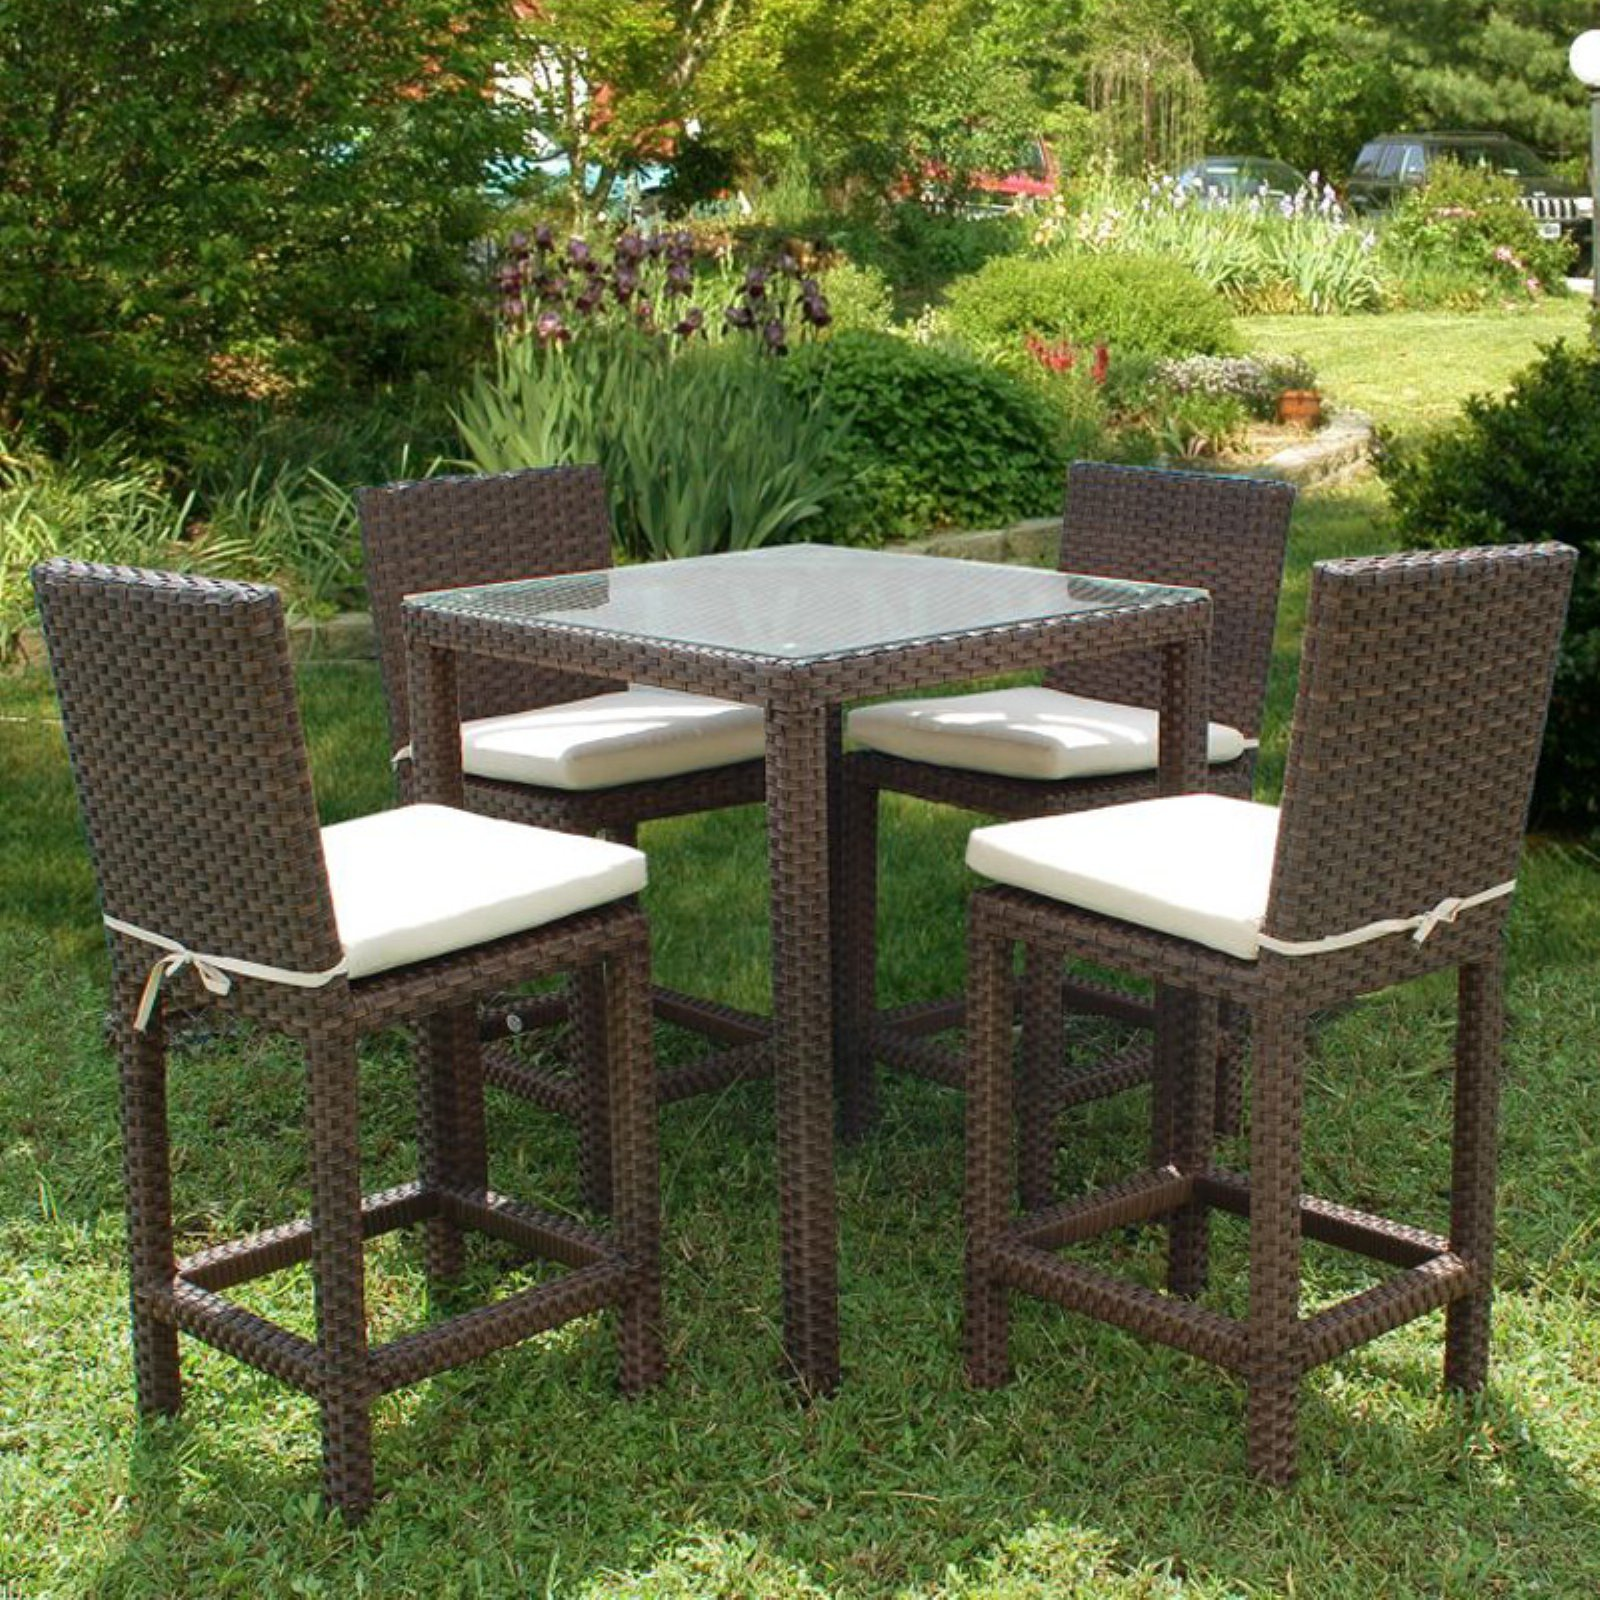 Outdoor atlantic monza square bar height all weather wicker dining set seats 4